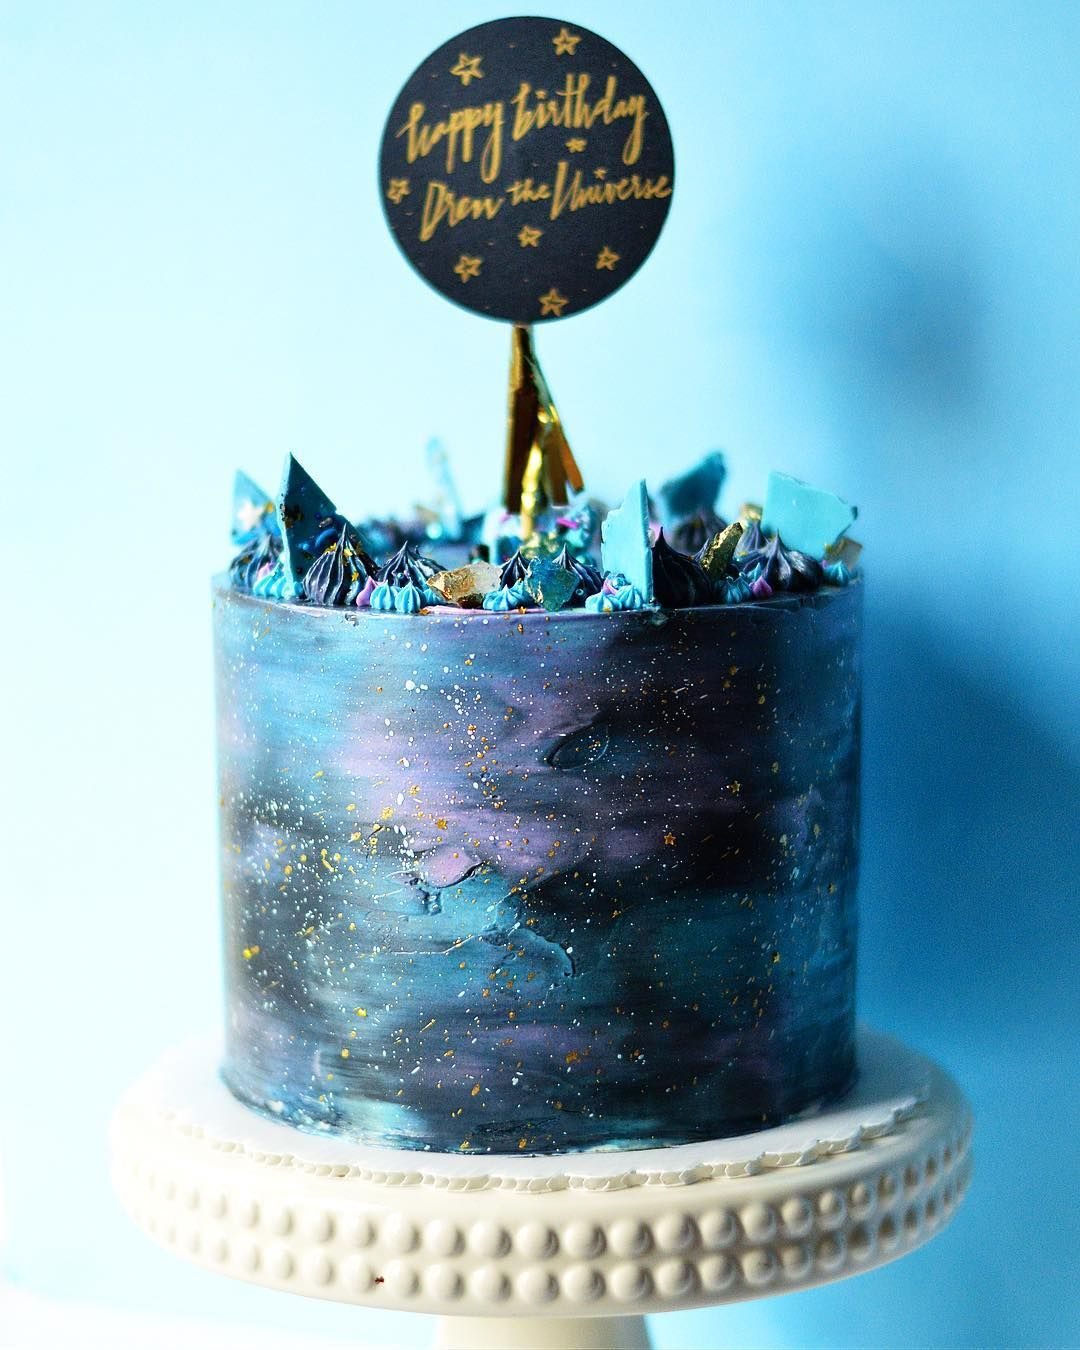 When Your Nickname Is Drew The Universe A Galaxy Birthday Cake Is A Must This Galaxy Was Hiding A Ch Chocolate Caramel Cake Caramel Cake Filling Caramel Cake